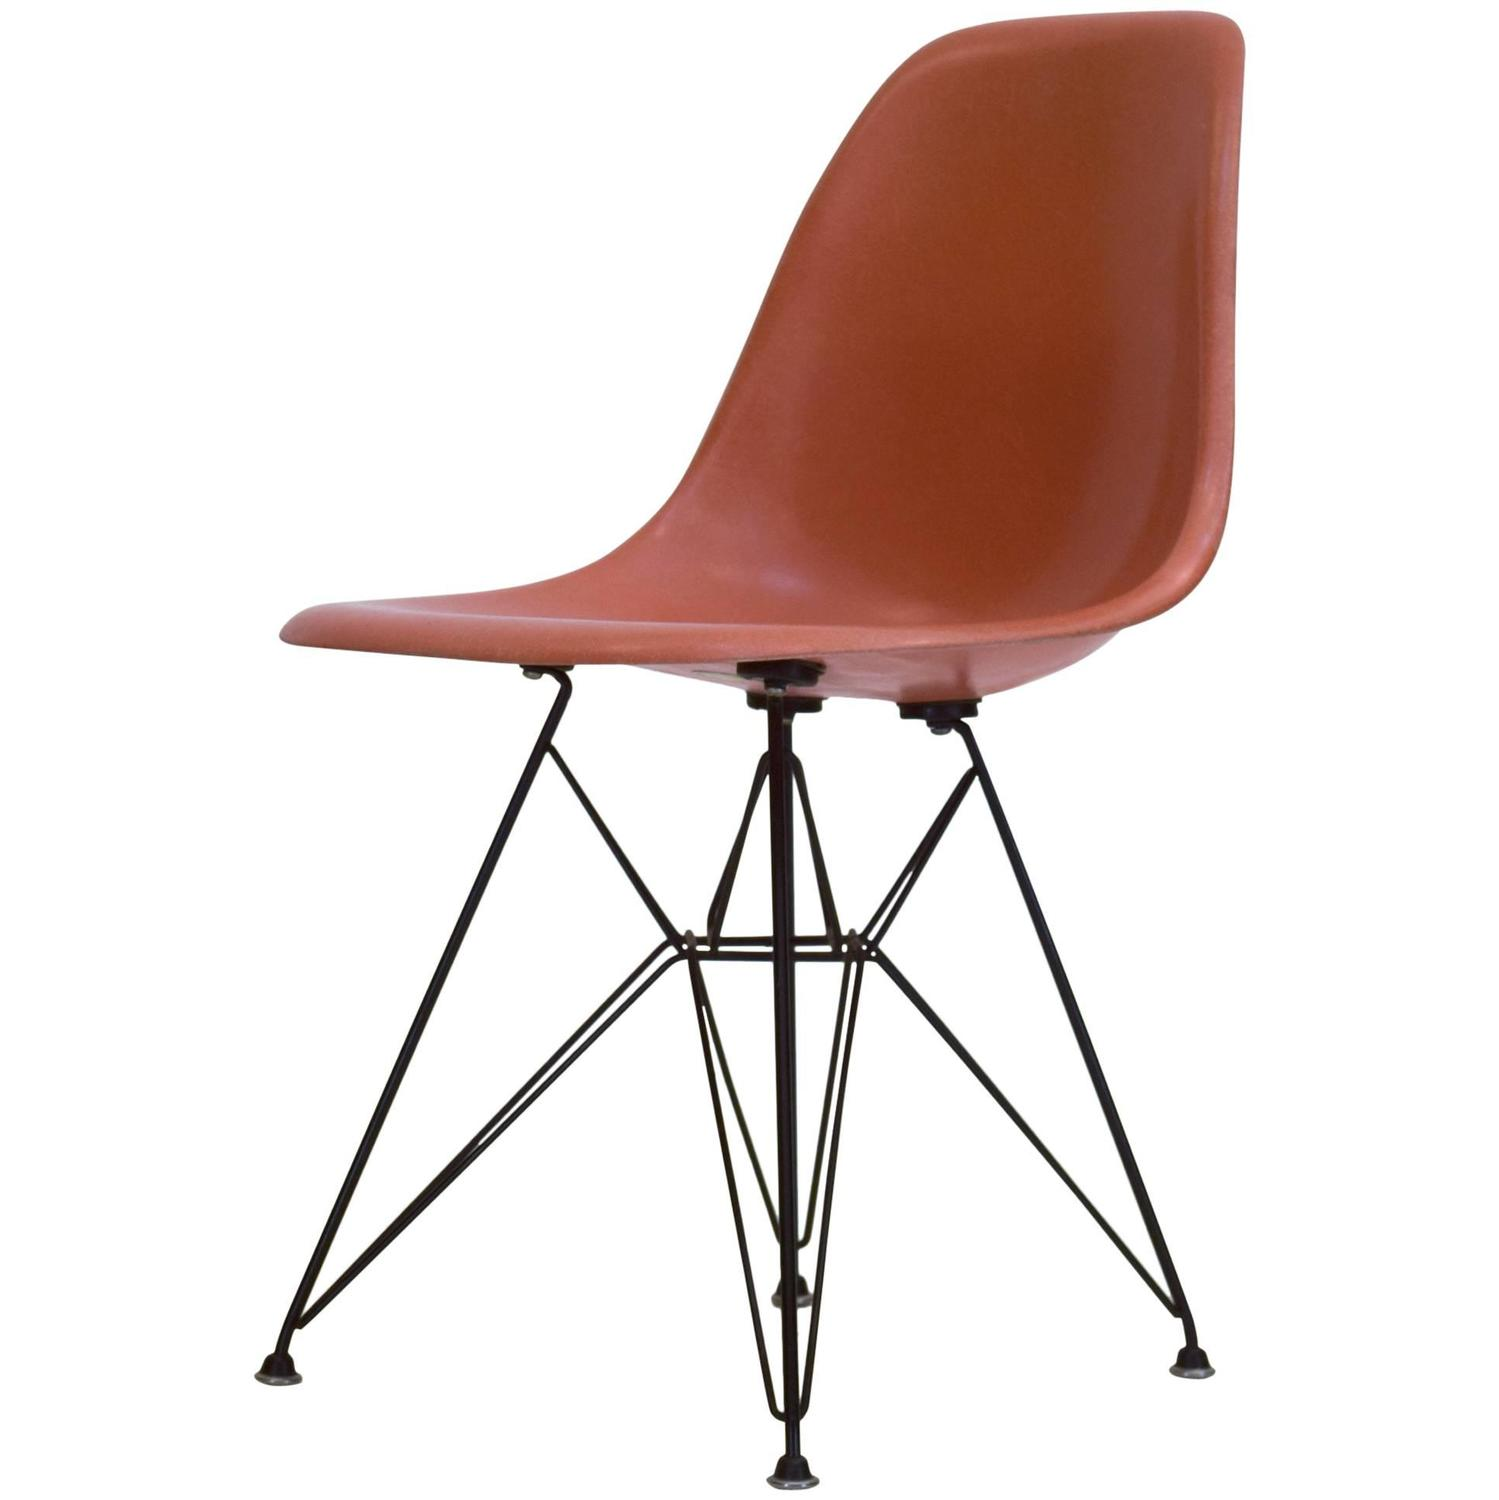 Delicieux Eames Shell Chair On Original Eiffel Base, 1950s For Sale At 1stdibs